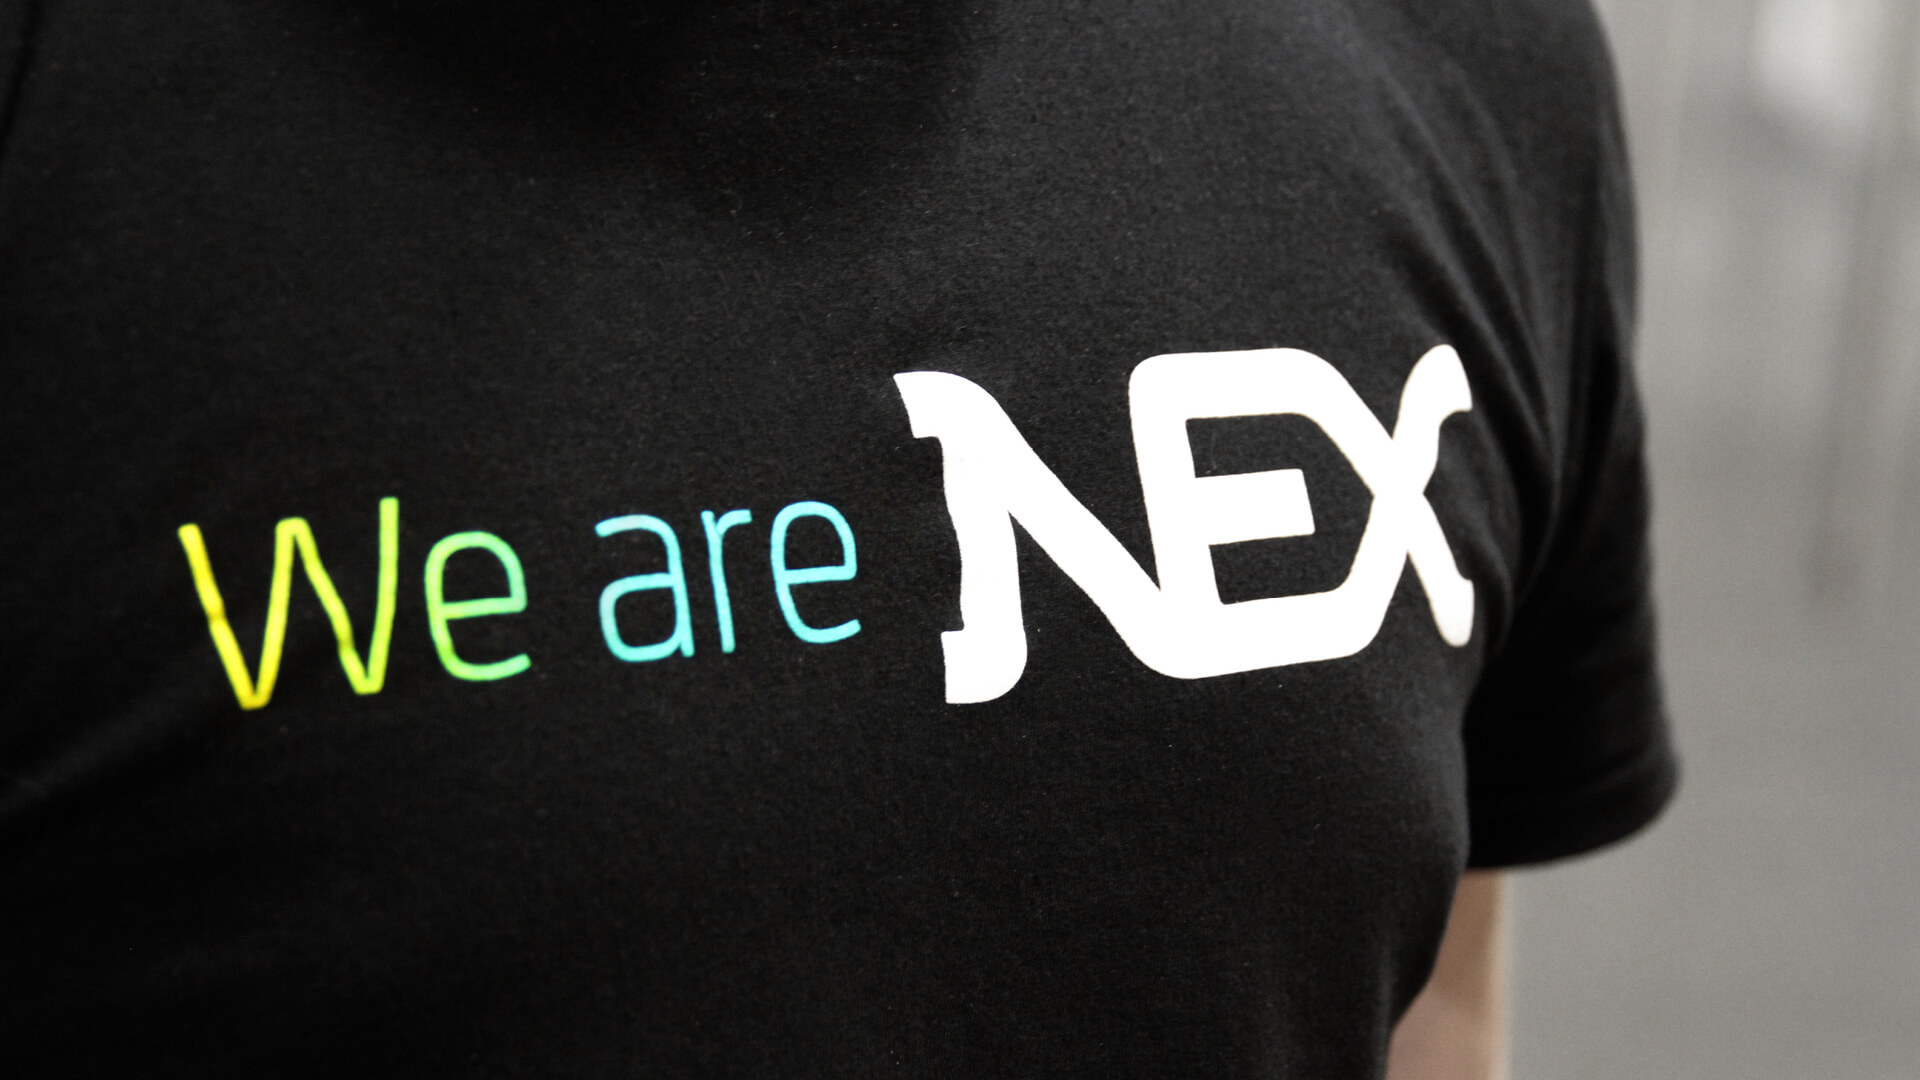 nex staff engagement campaign internal messaging promotion